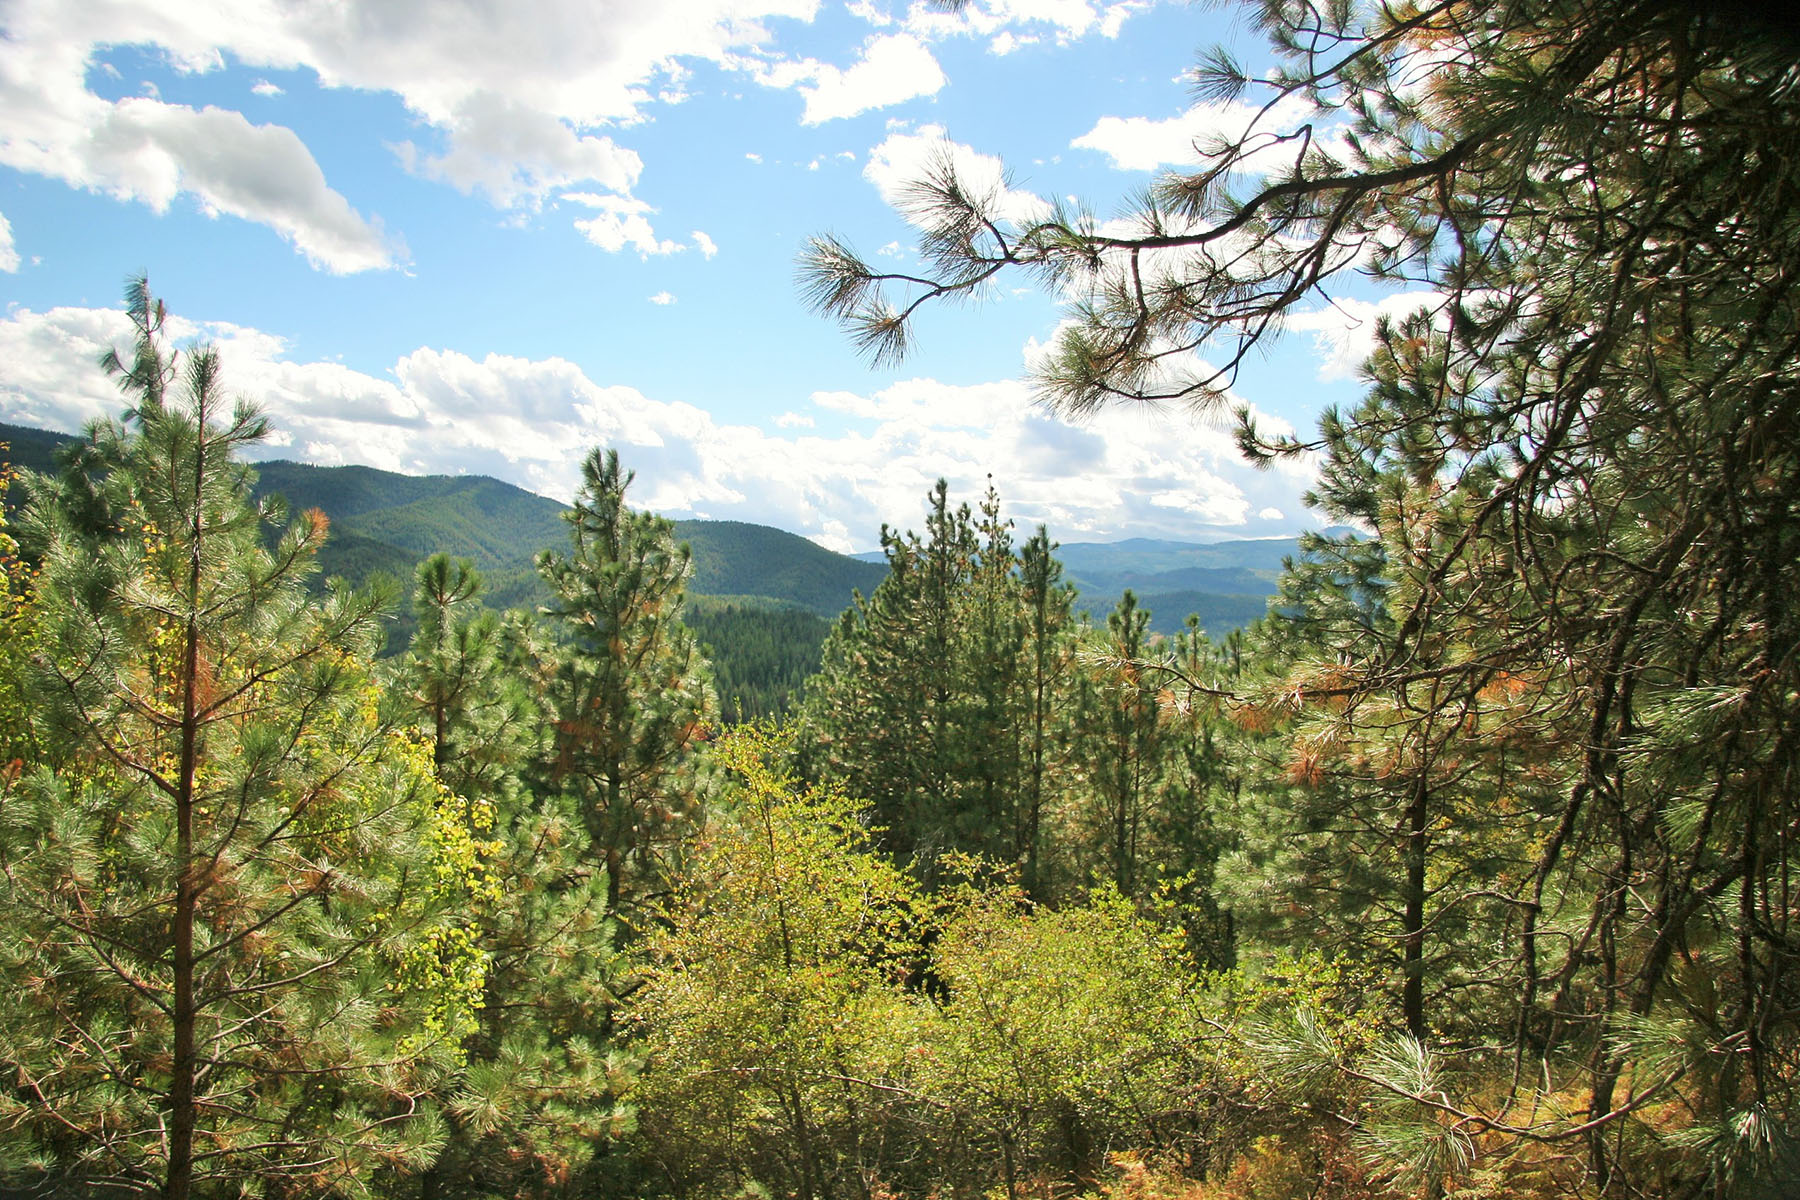 Terreno por un Venta en 40 acres with amazing views overlooking the Silver Valley NNA South Fork Ridge 40-2, Smelterville, Idaho, 83868 Estados Unidos